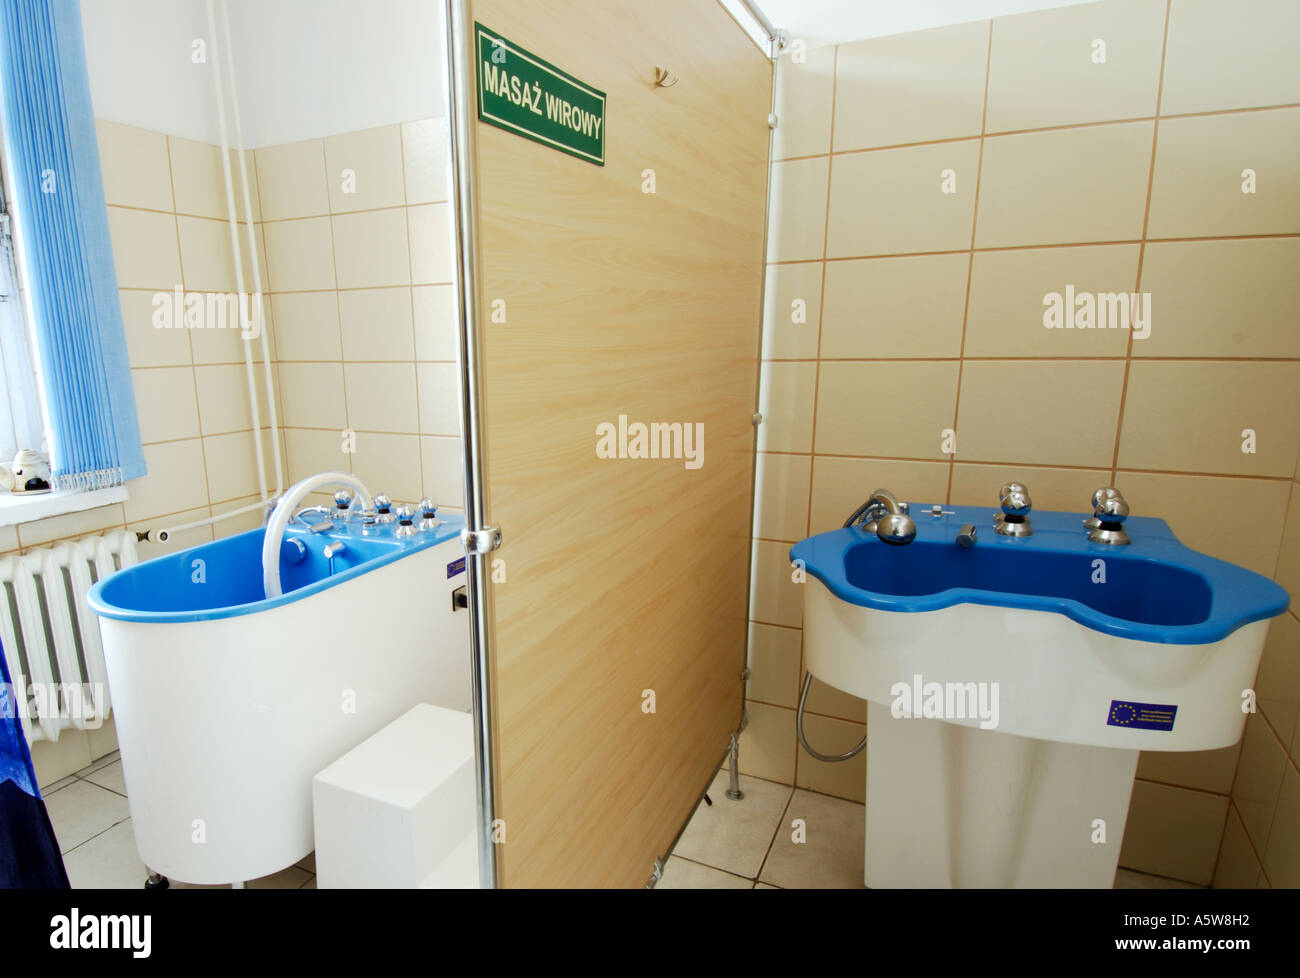 Poland, Lodz, equipment for rotational water massage baths with ...